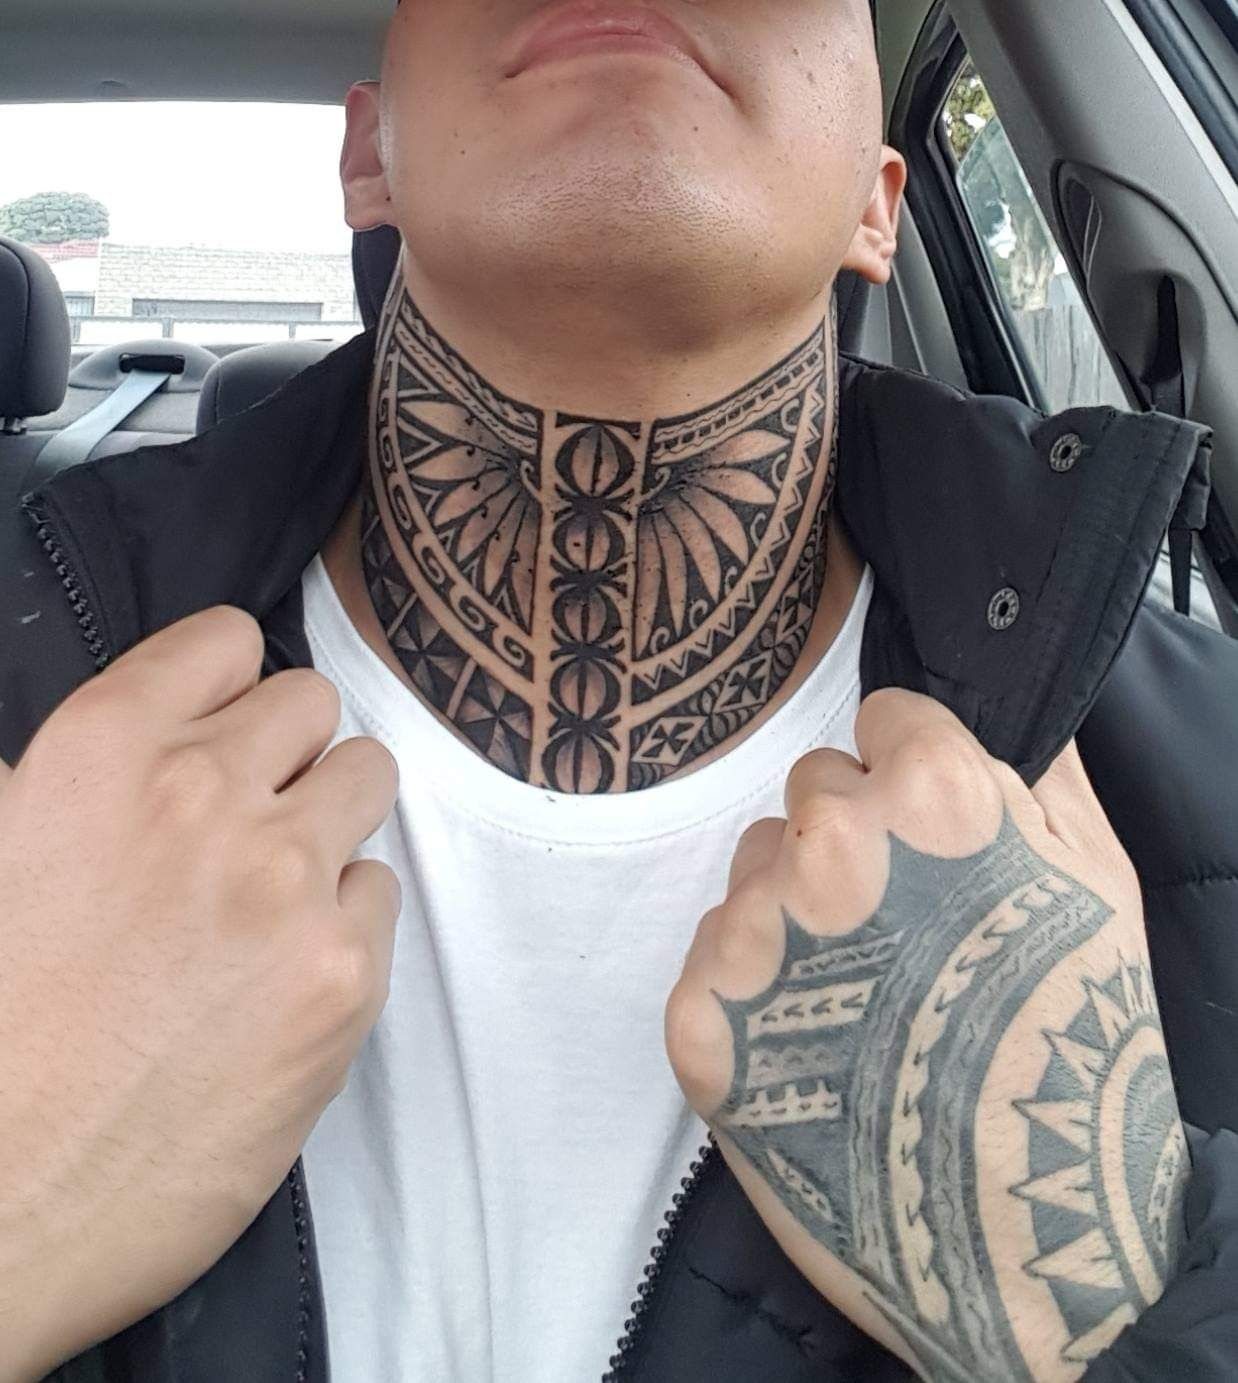 My Cousins Polynesian Mix Neck Tattoo Neck Tattoo Tattoos Throat Tattoo